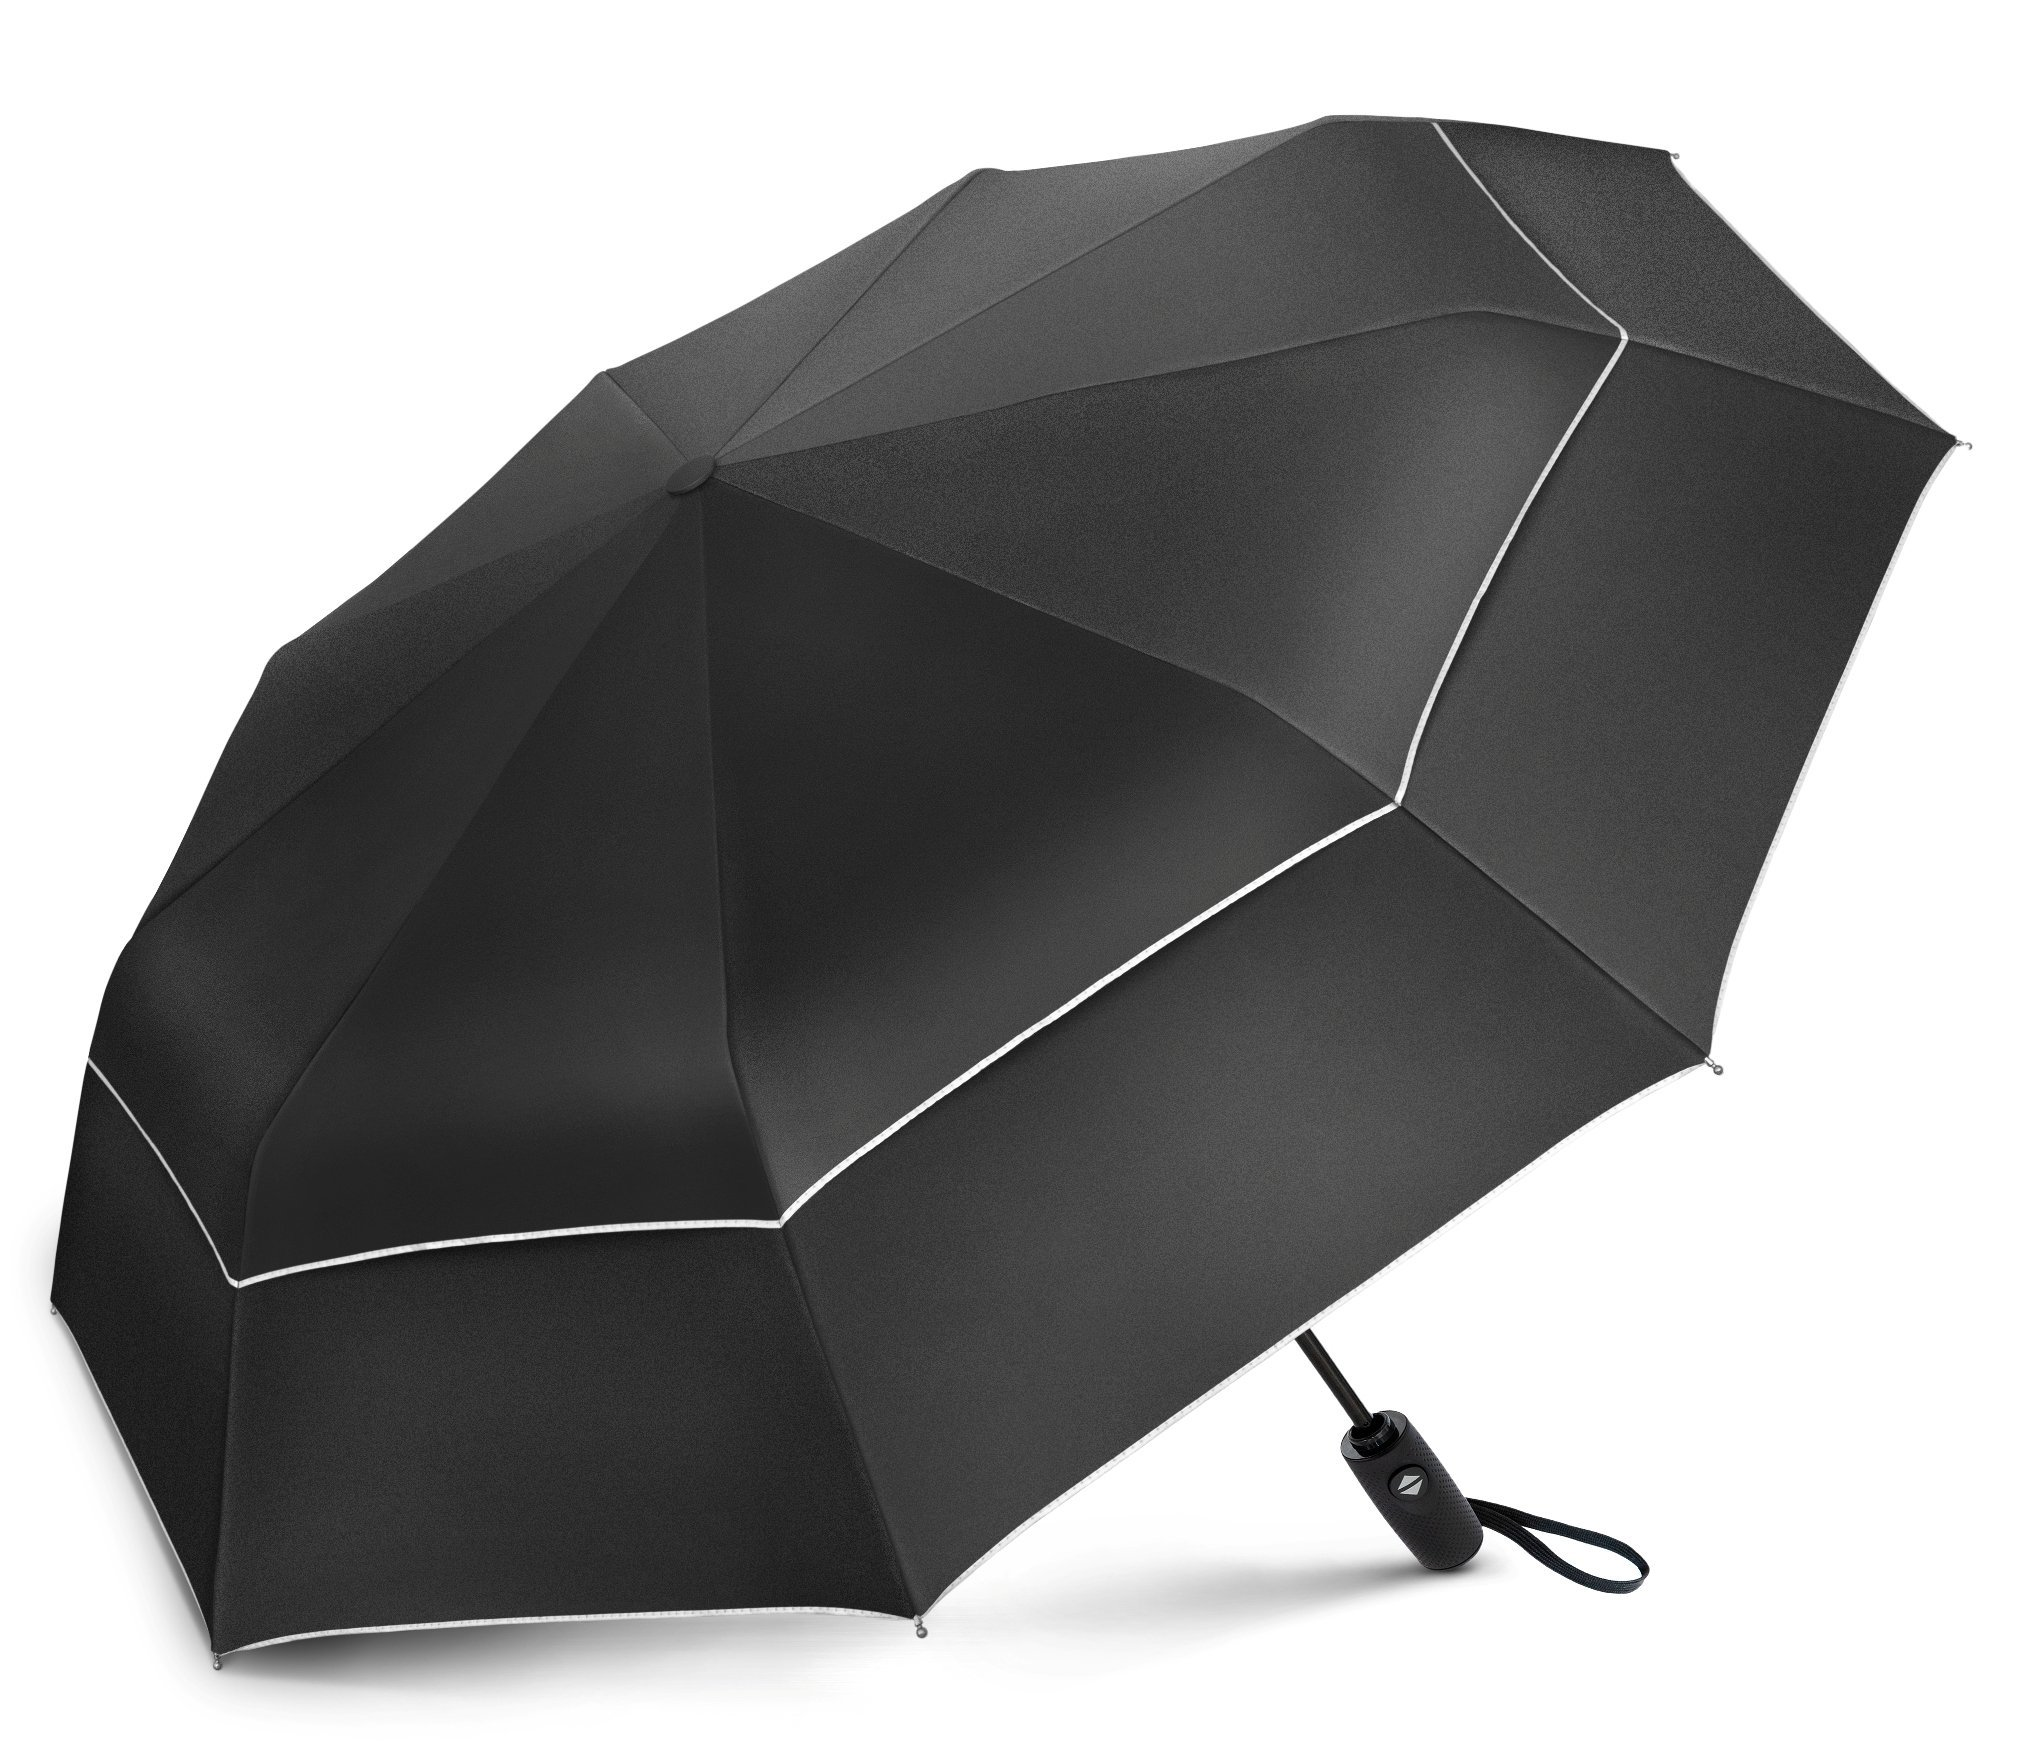 EEZ-Y Compact Travel Umbrella w/UV Protection - UPF 50+ Sun and Rain - Auto Open Close